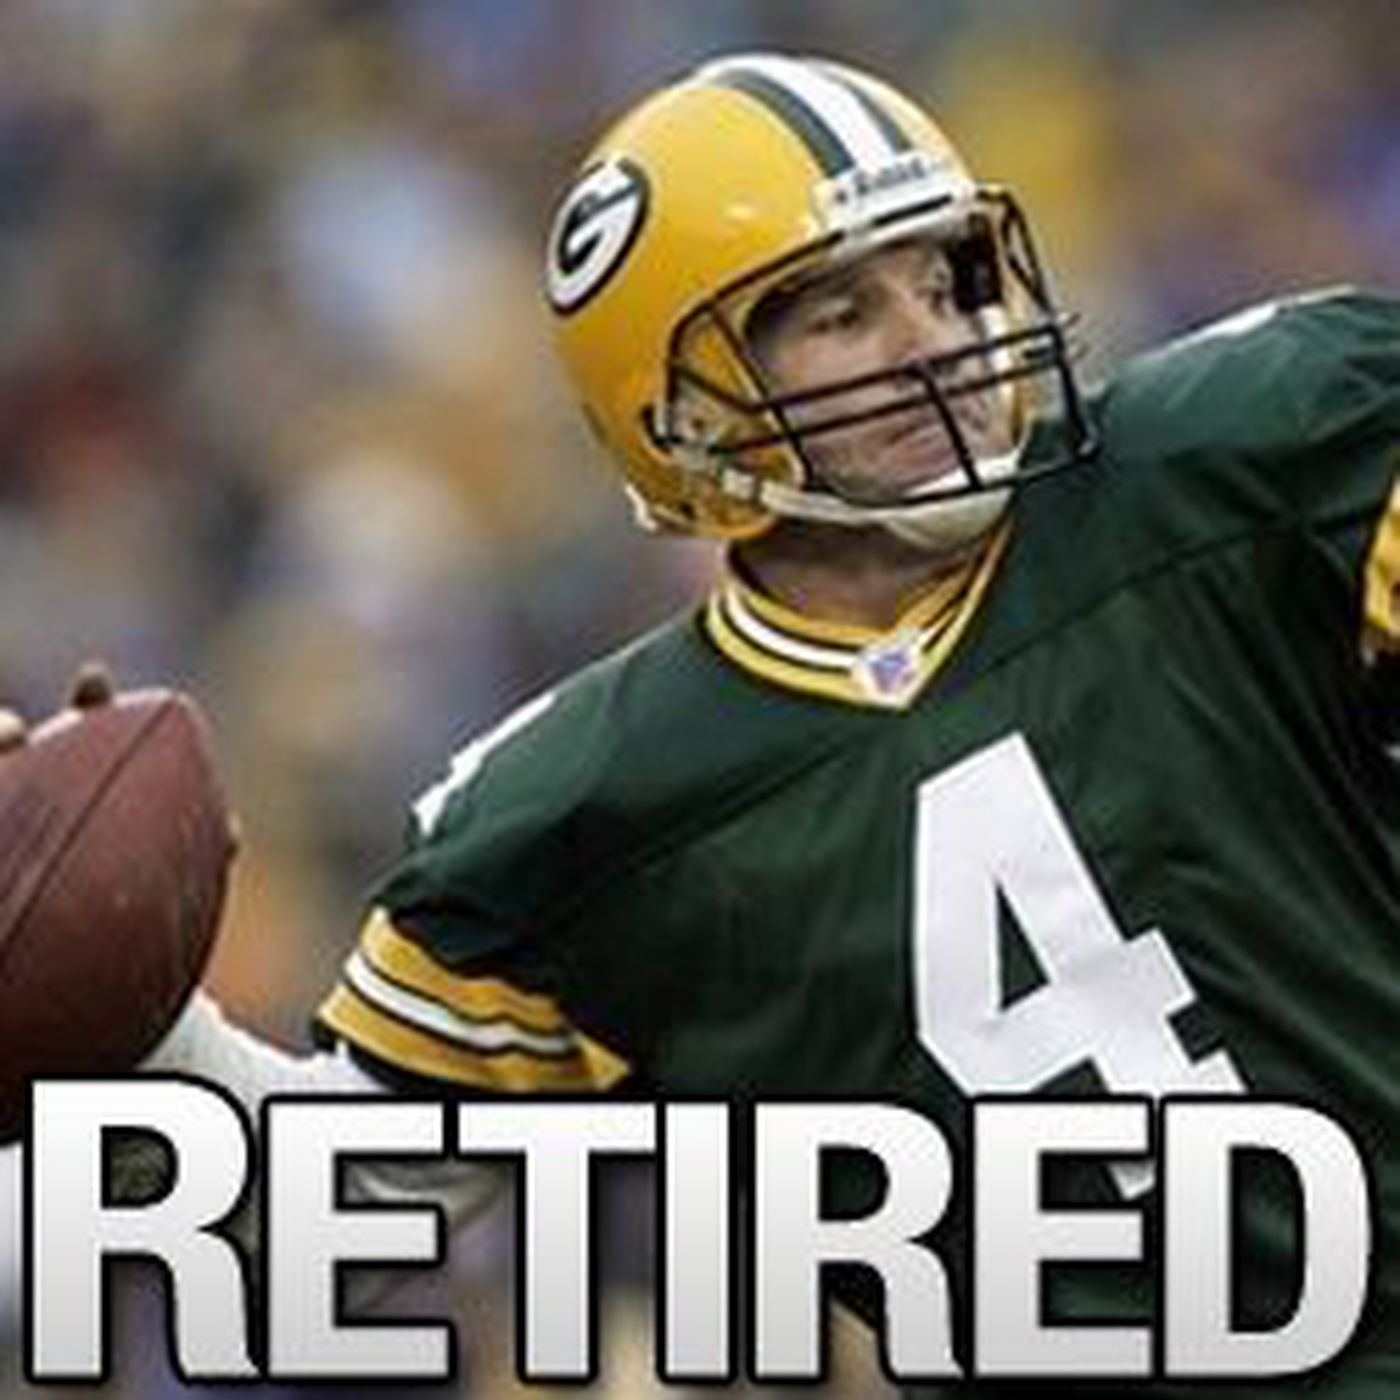 823f6d12391 After flirting with retirement for years, Brett Favre means it this time.  The Green Bay Packers quarterback quit after a 17-season career in which he  ...